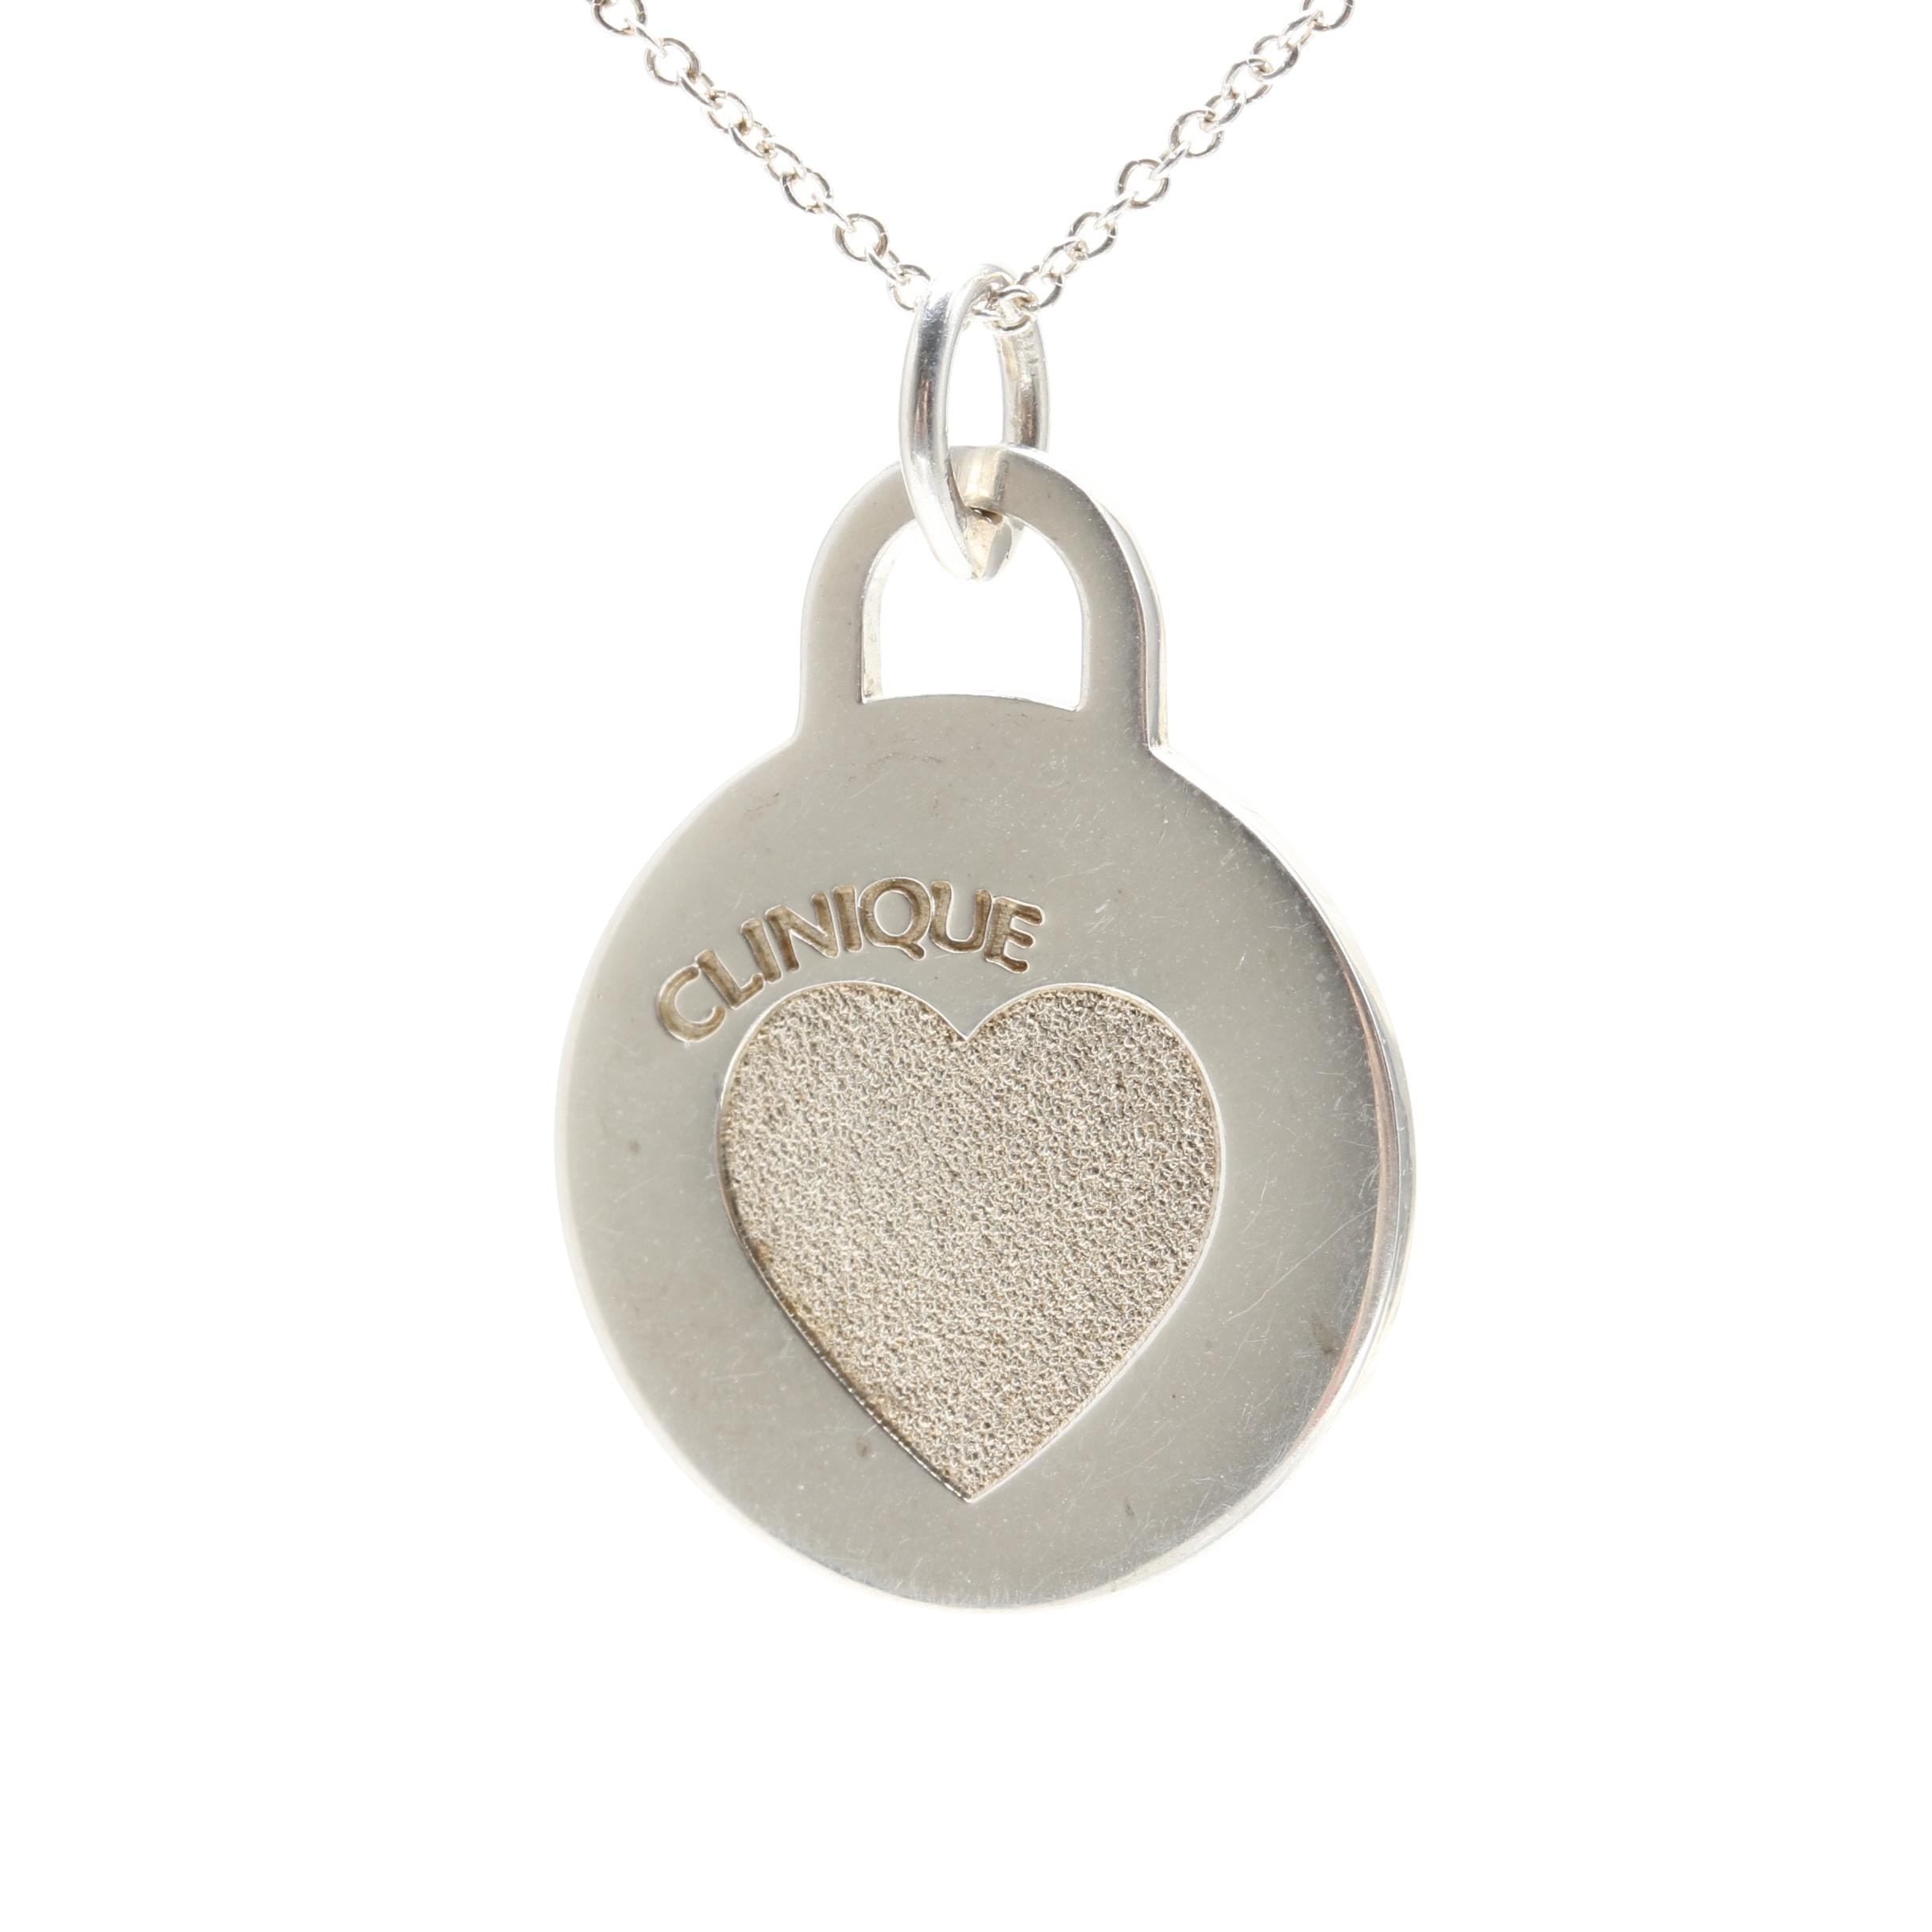 Tiffany & Co. Sterling Silver Clinique Medallion Necklace